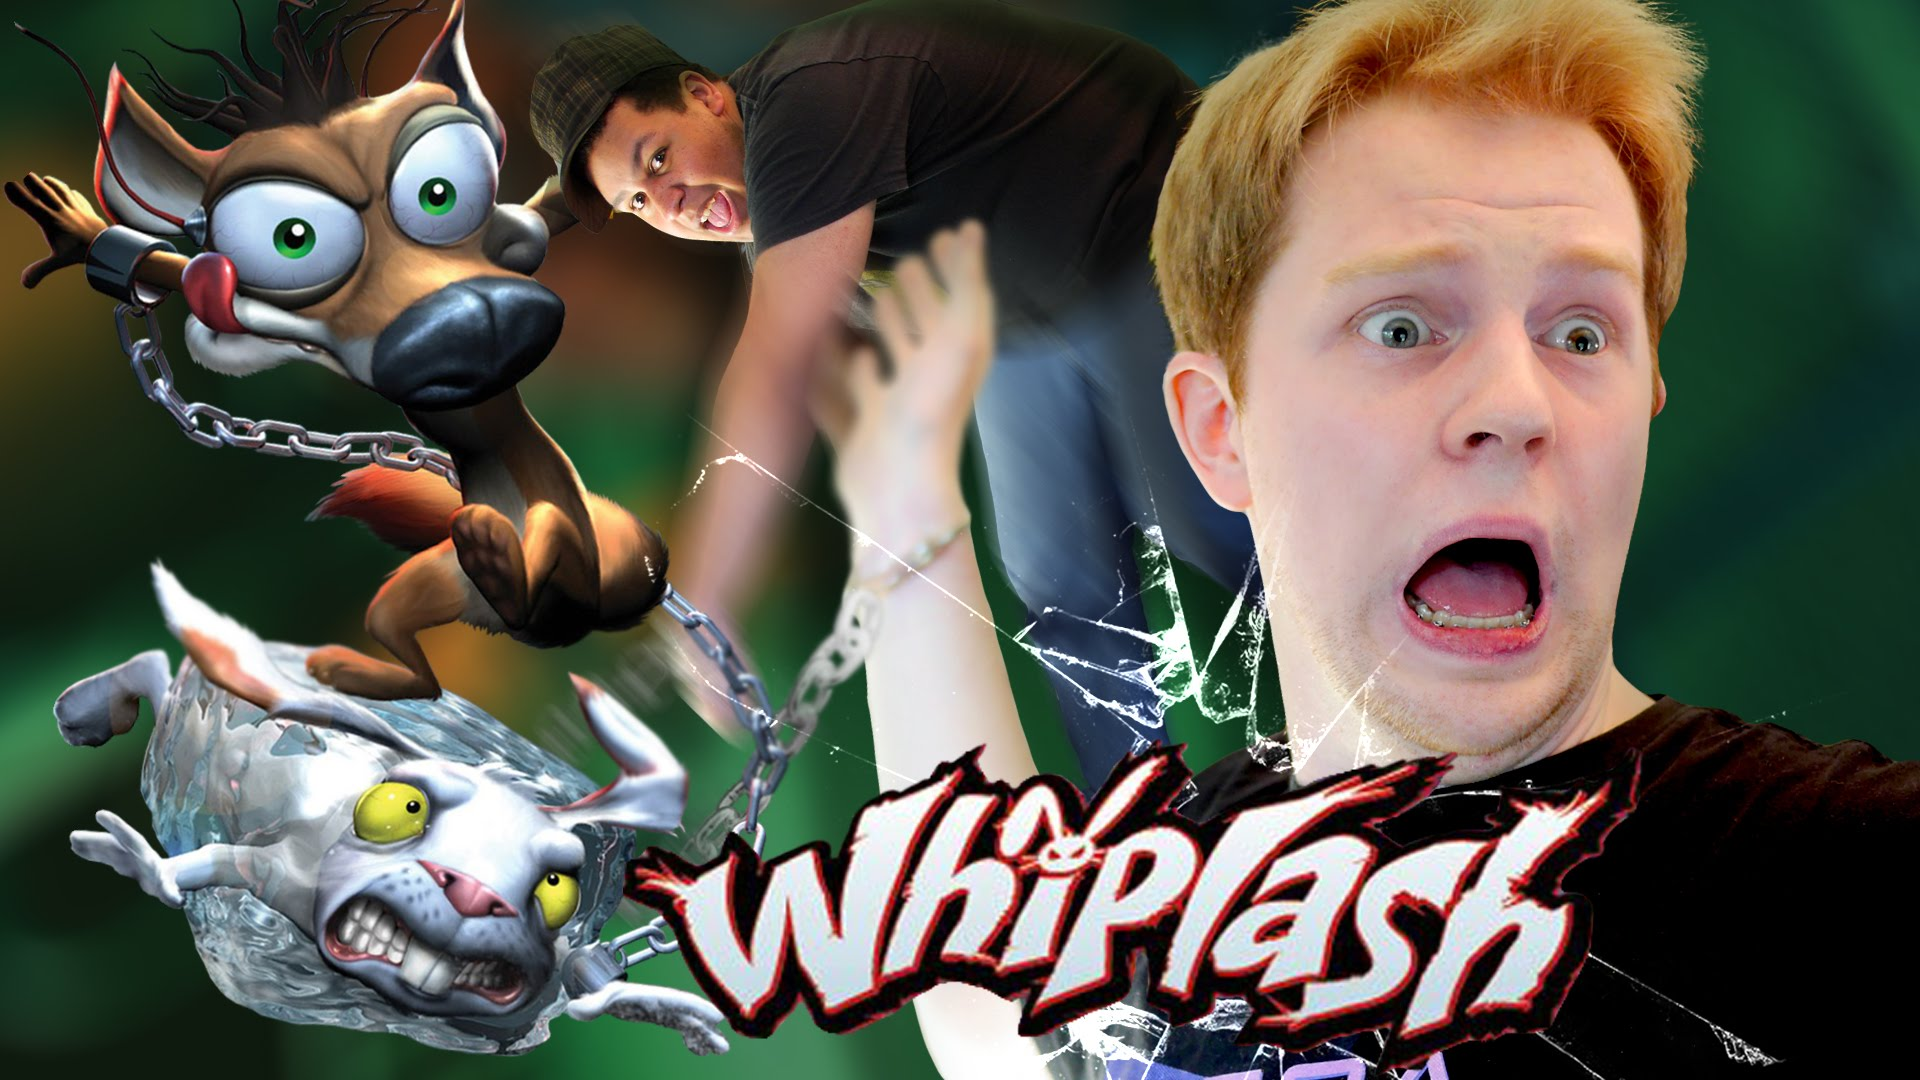 Whiplash - Nitro Rad | Nitro Rad Wiki | FANDOM powered by Wikia